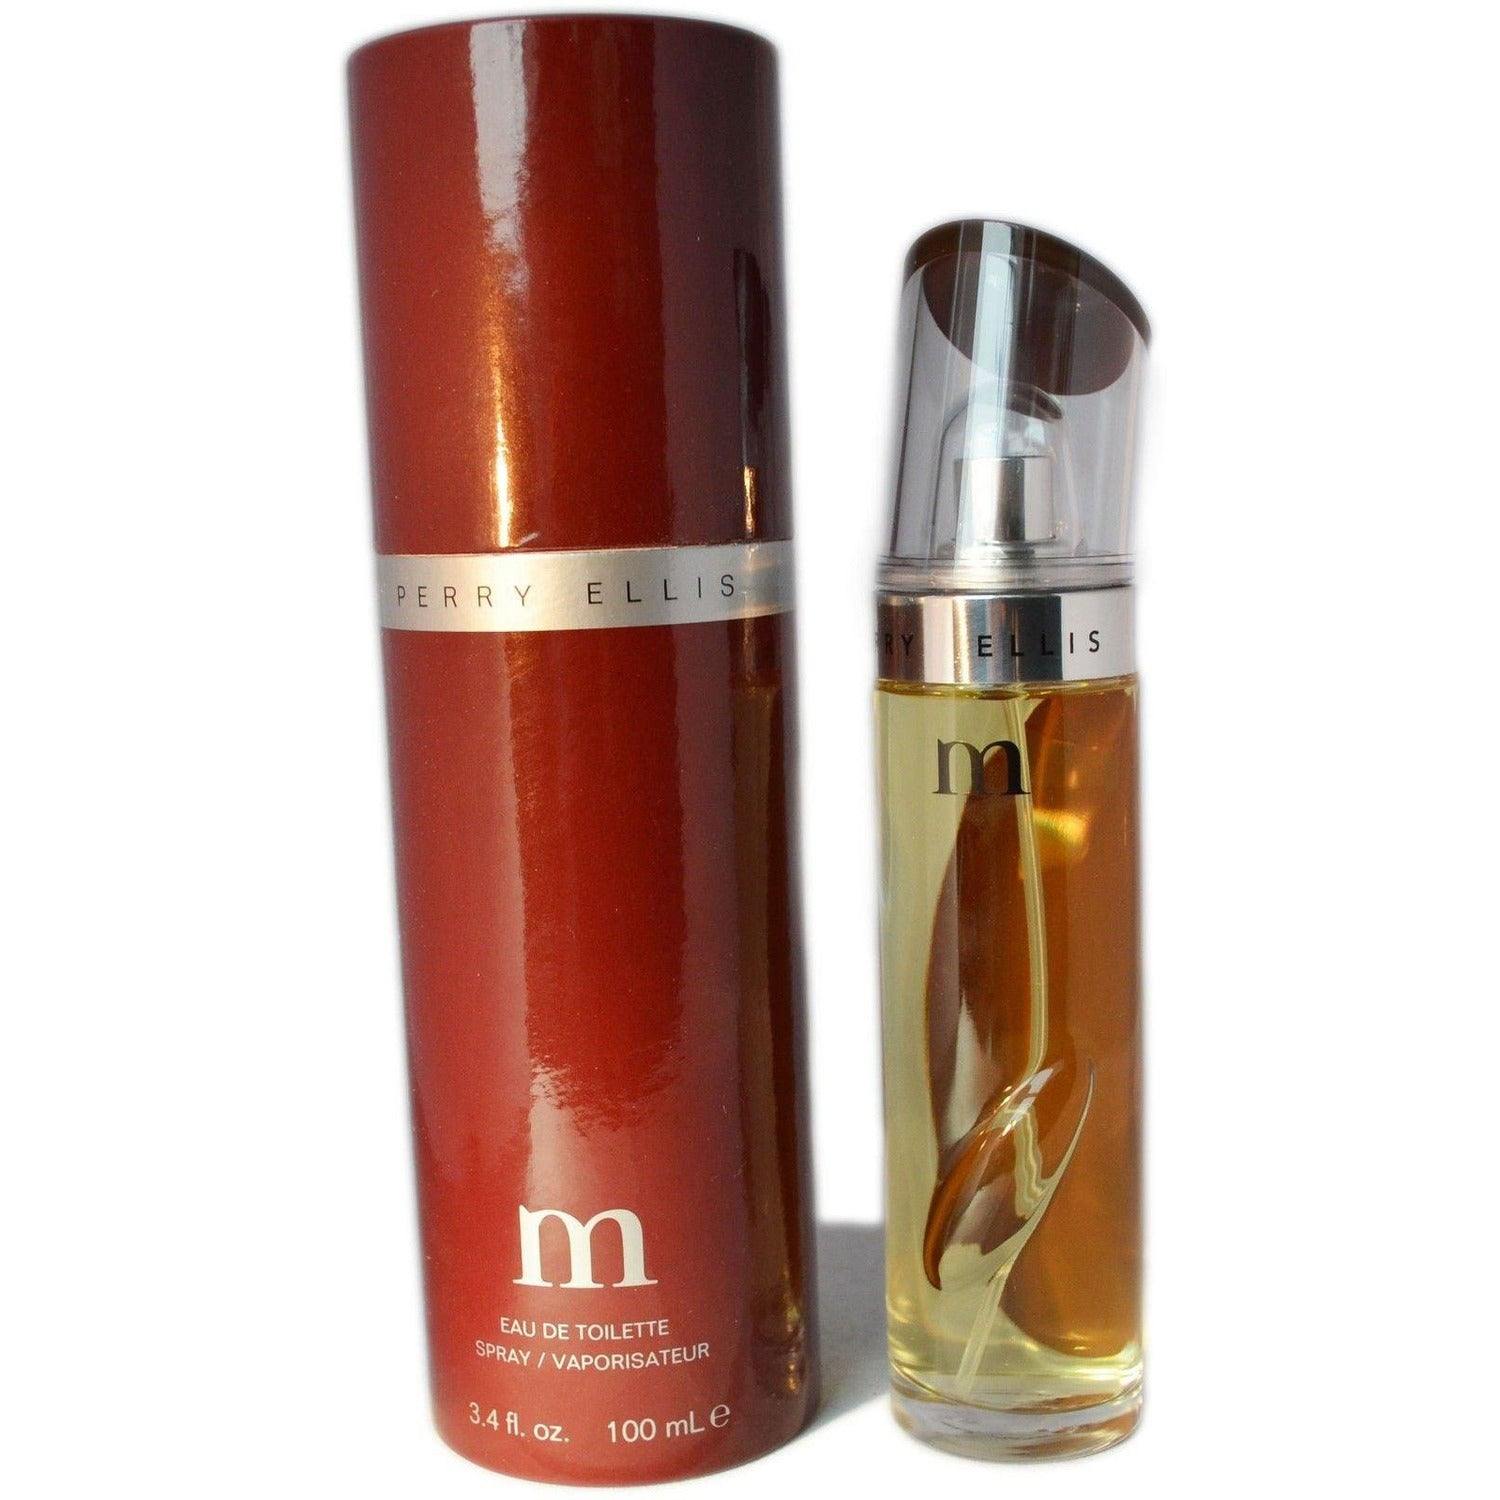 PERRY M by Perry Ellis Cologne edt 3.4 oz for Men New in Box